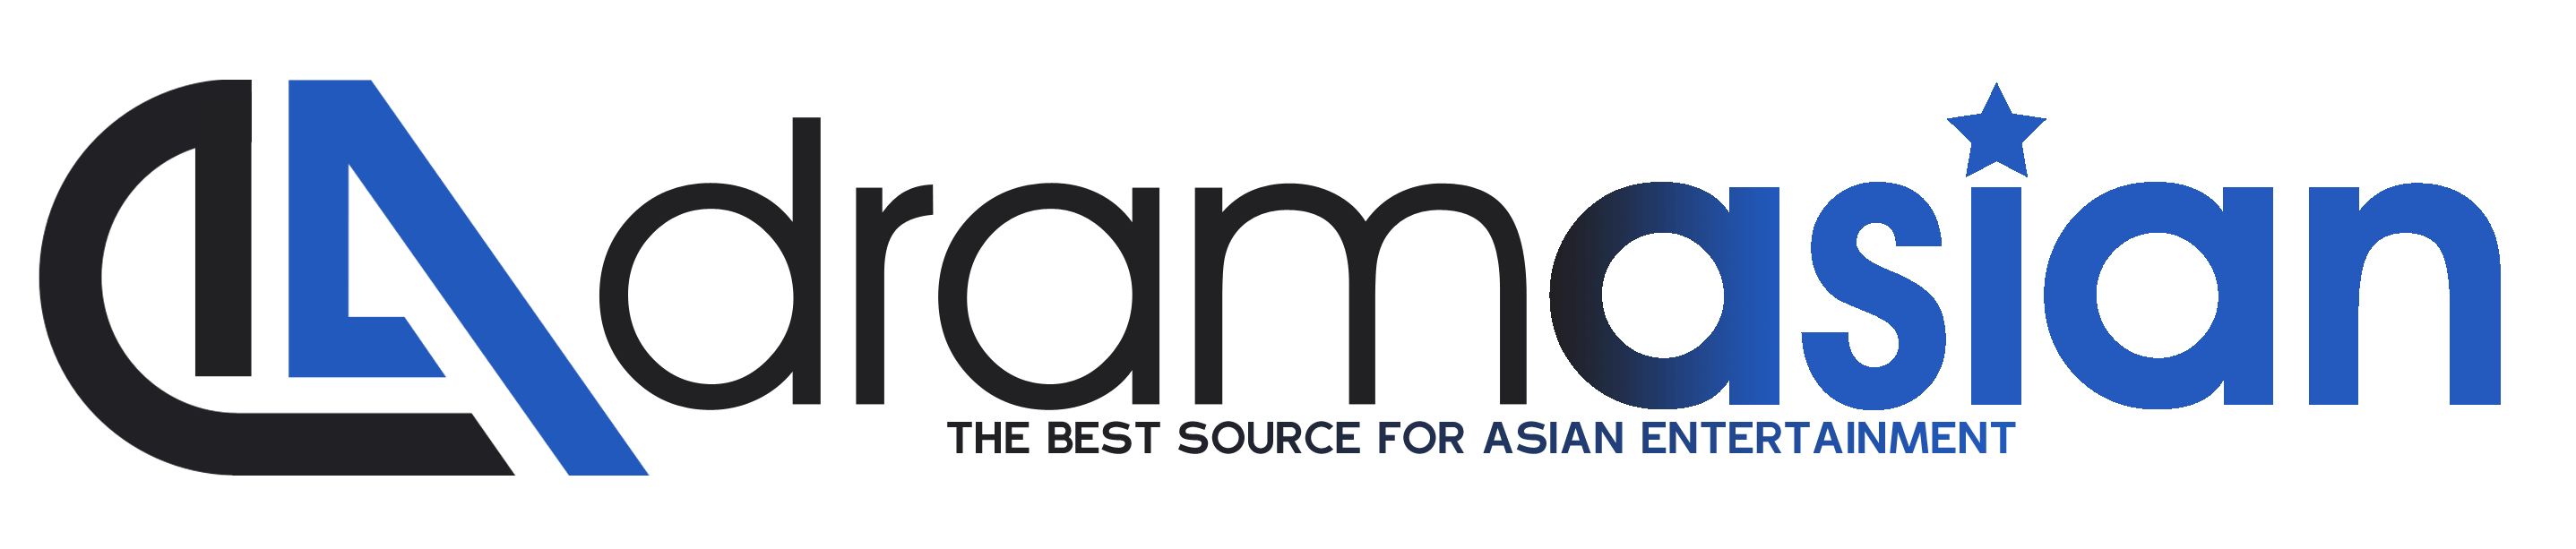 Dramasian: Asian Entertainment News